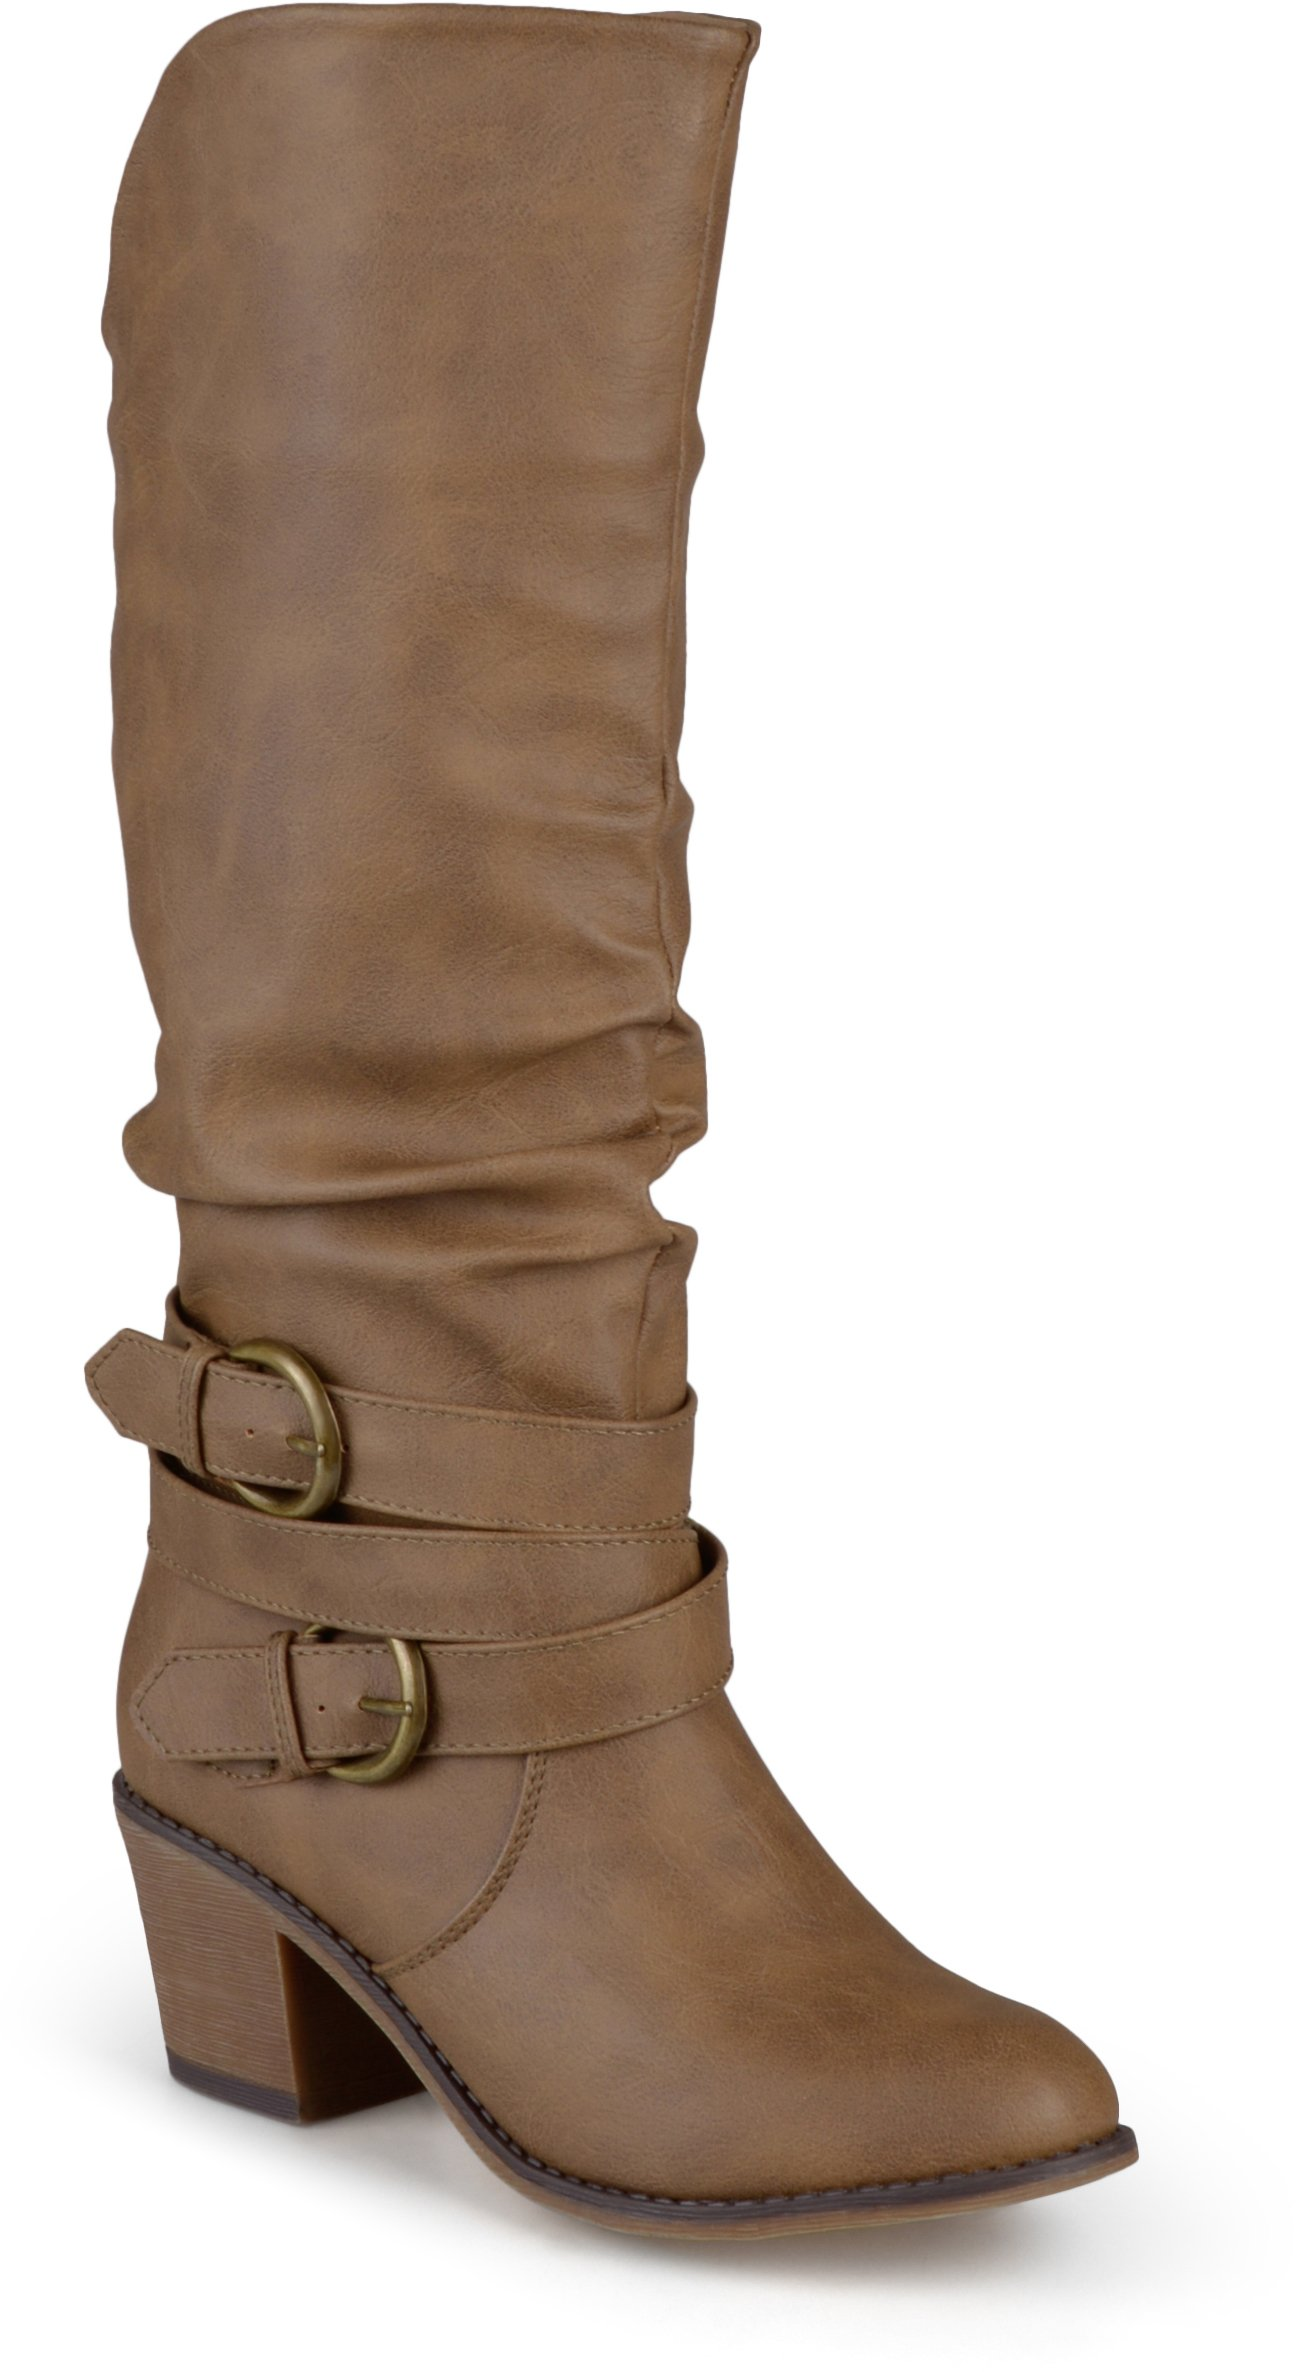 Journee Collection Women's Buckle Slouch High Heel Boots Taupe, 7.5 Regular US